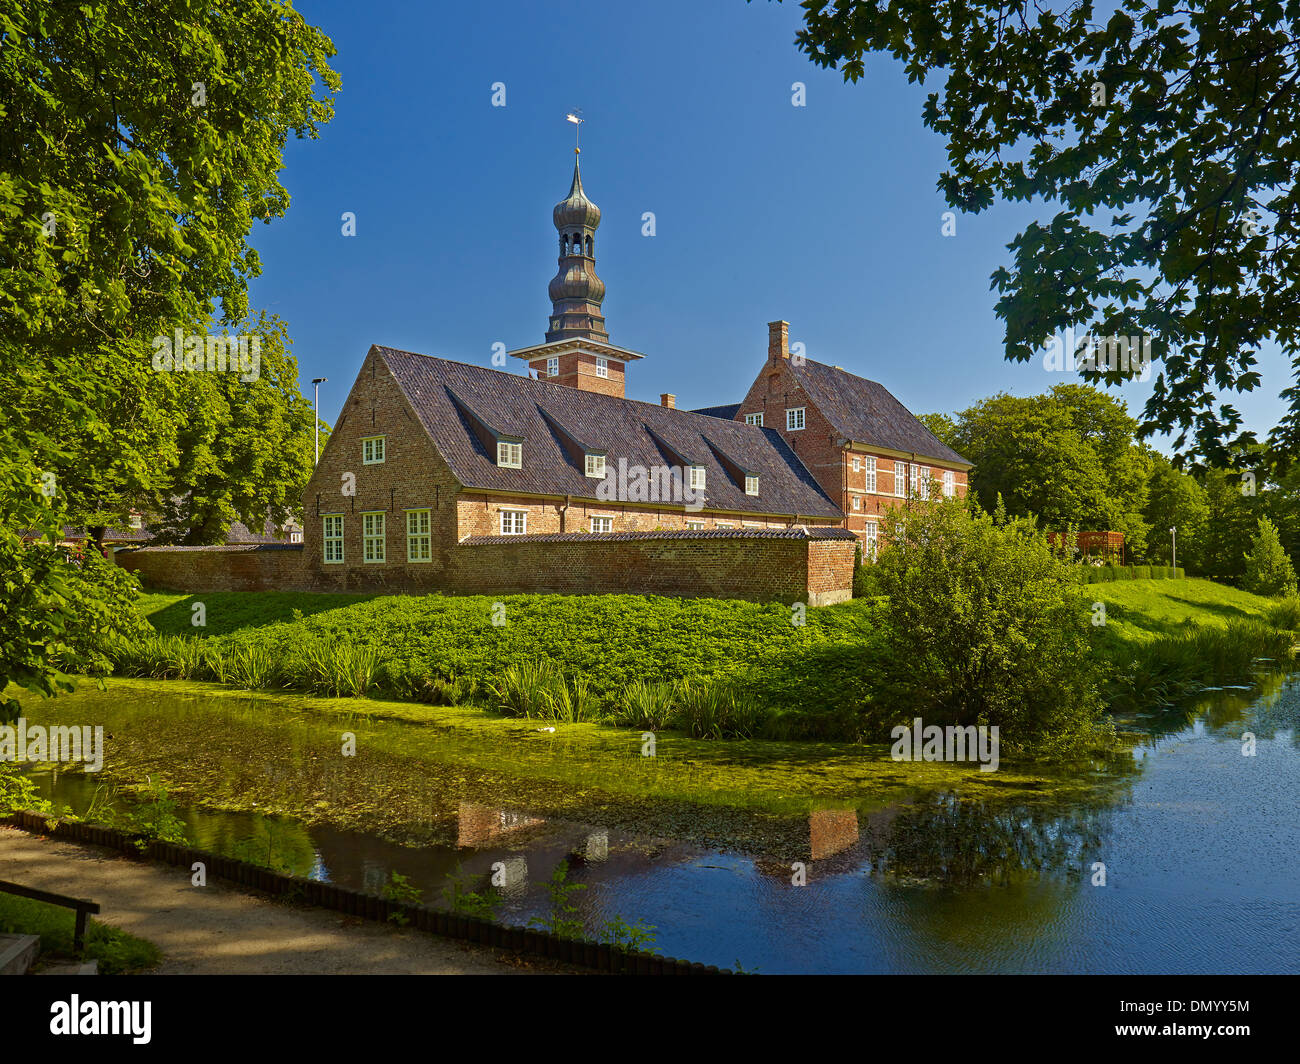 Husum Castle, district of North Friesland, Schleswig-Holstein, Germany - Stock Image